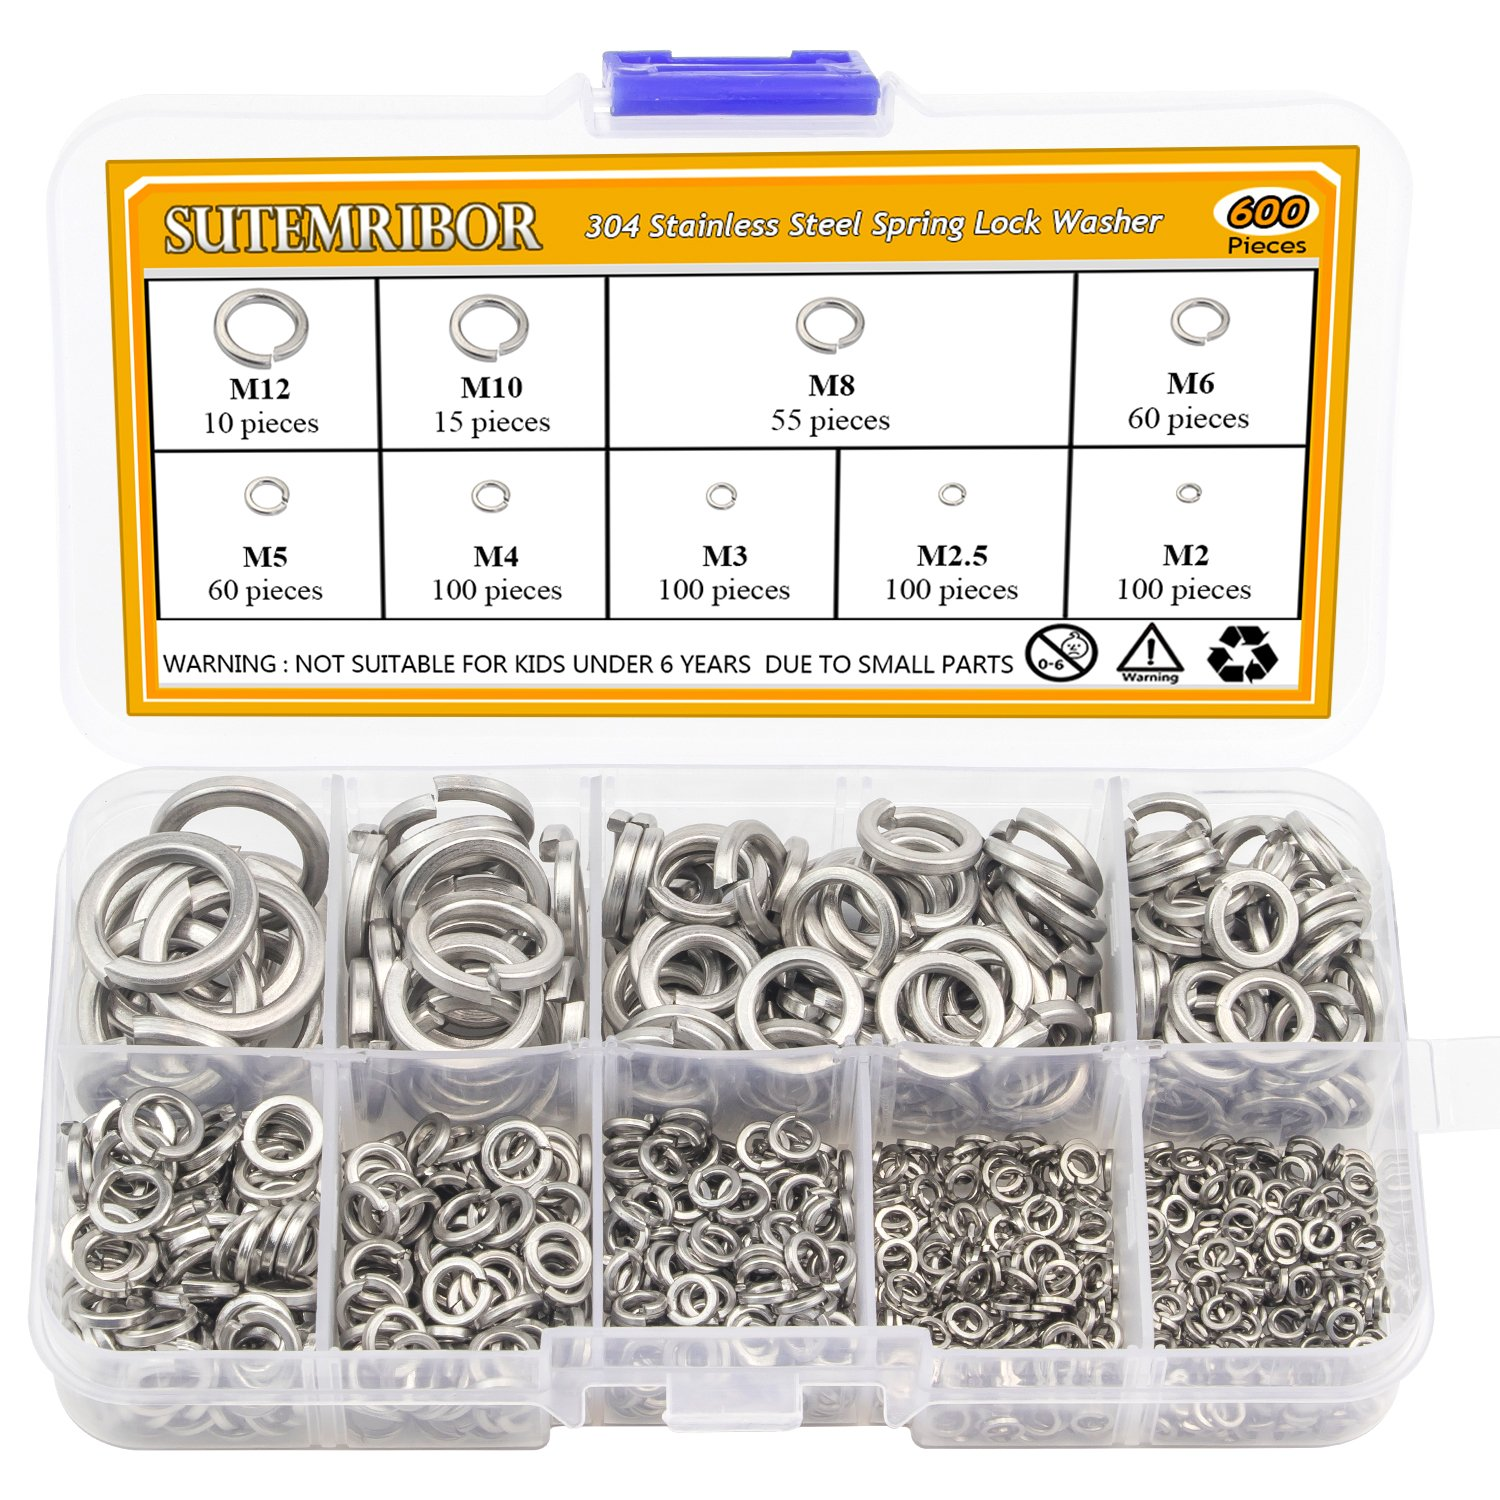 Sutemribor 304 Stainless Steel High order Spring Assortment Washer Set Lock Excellence